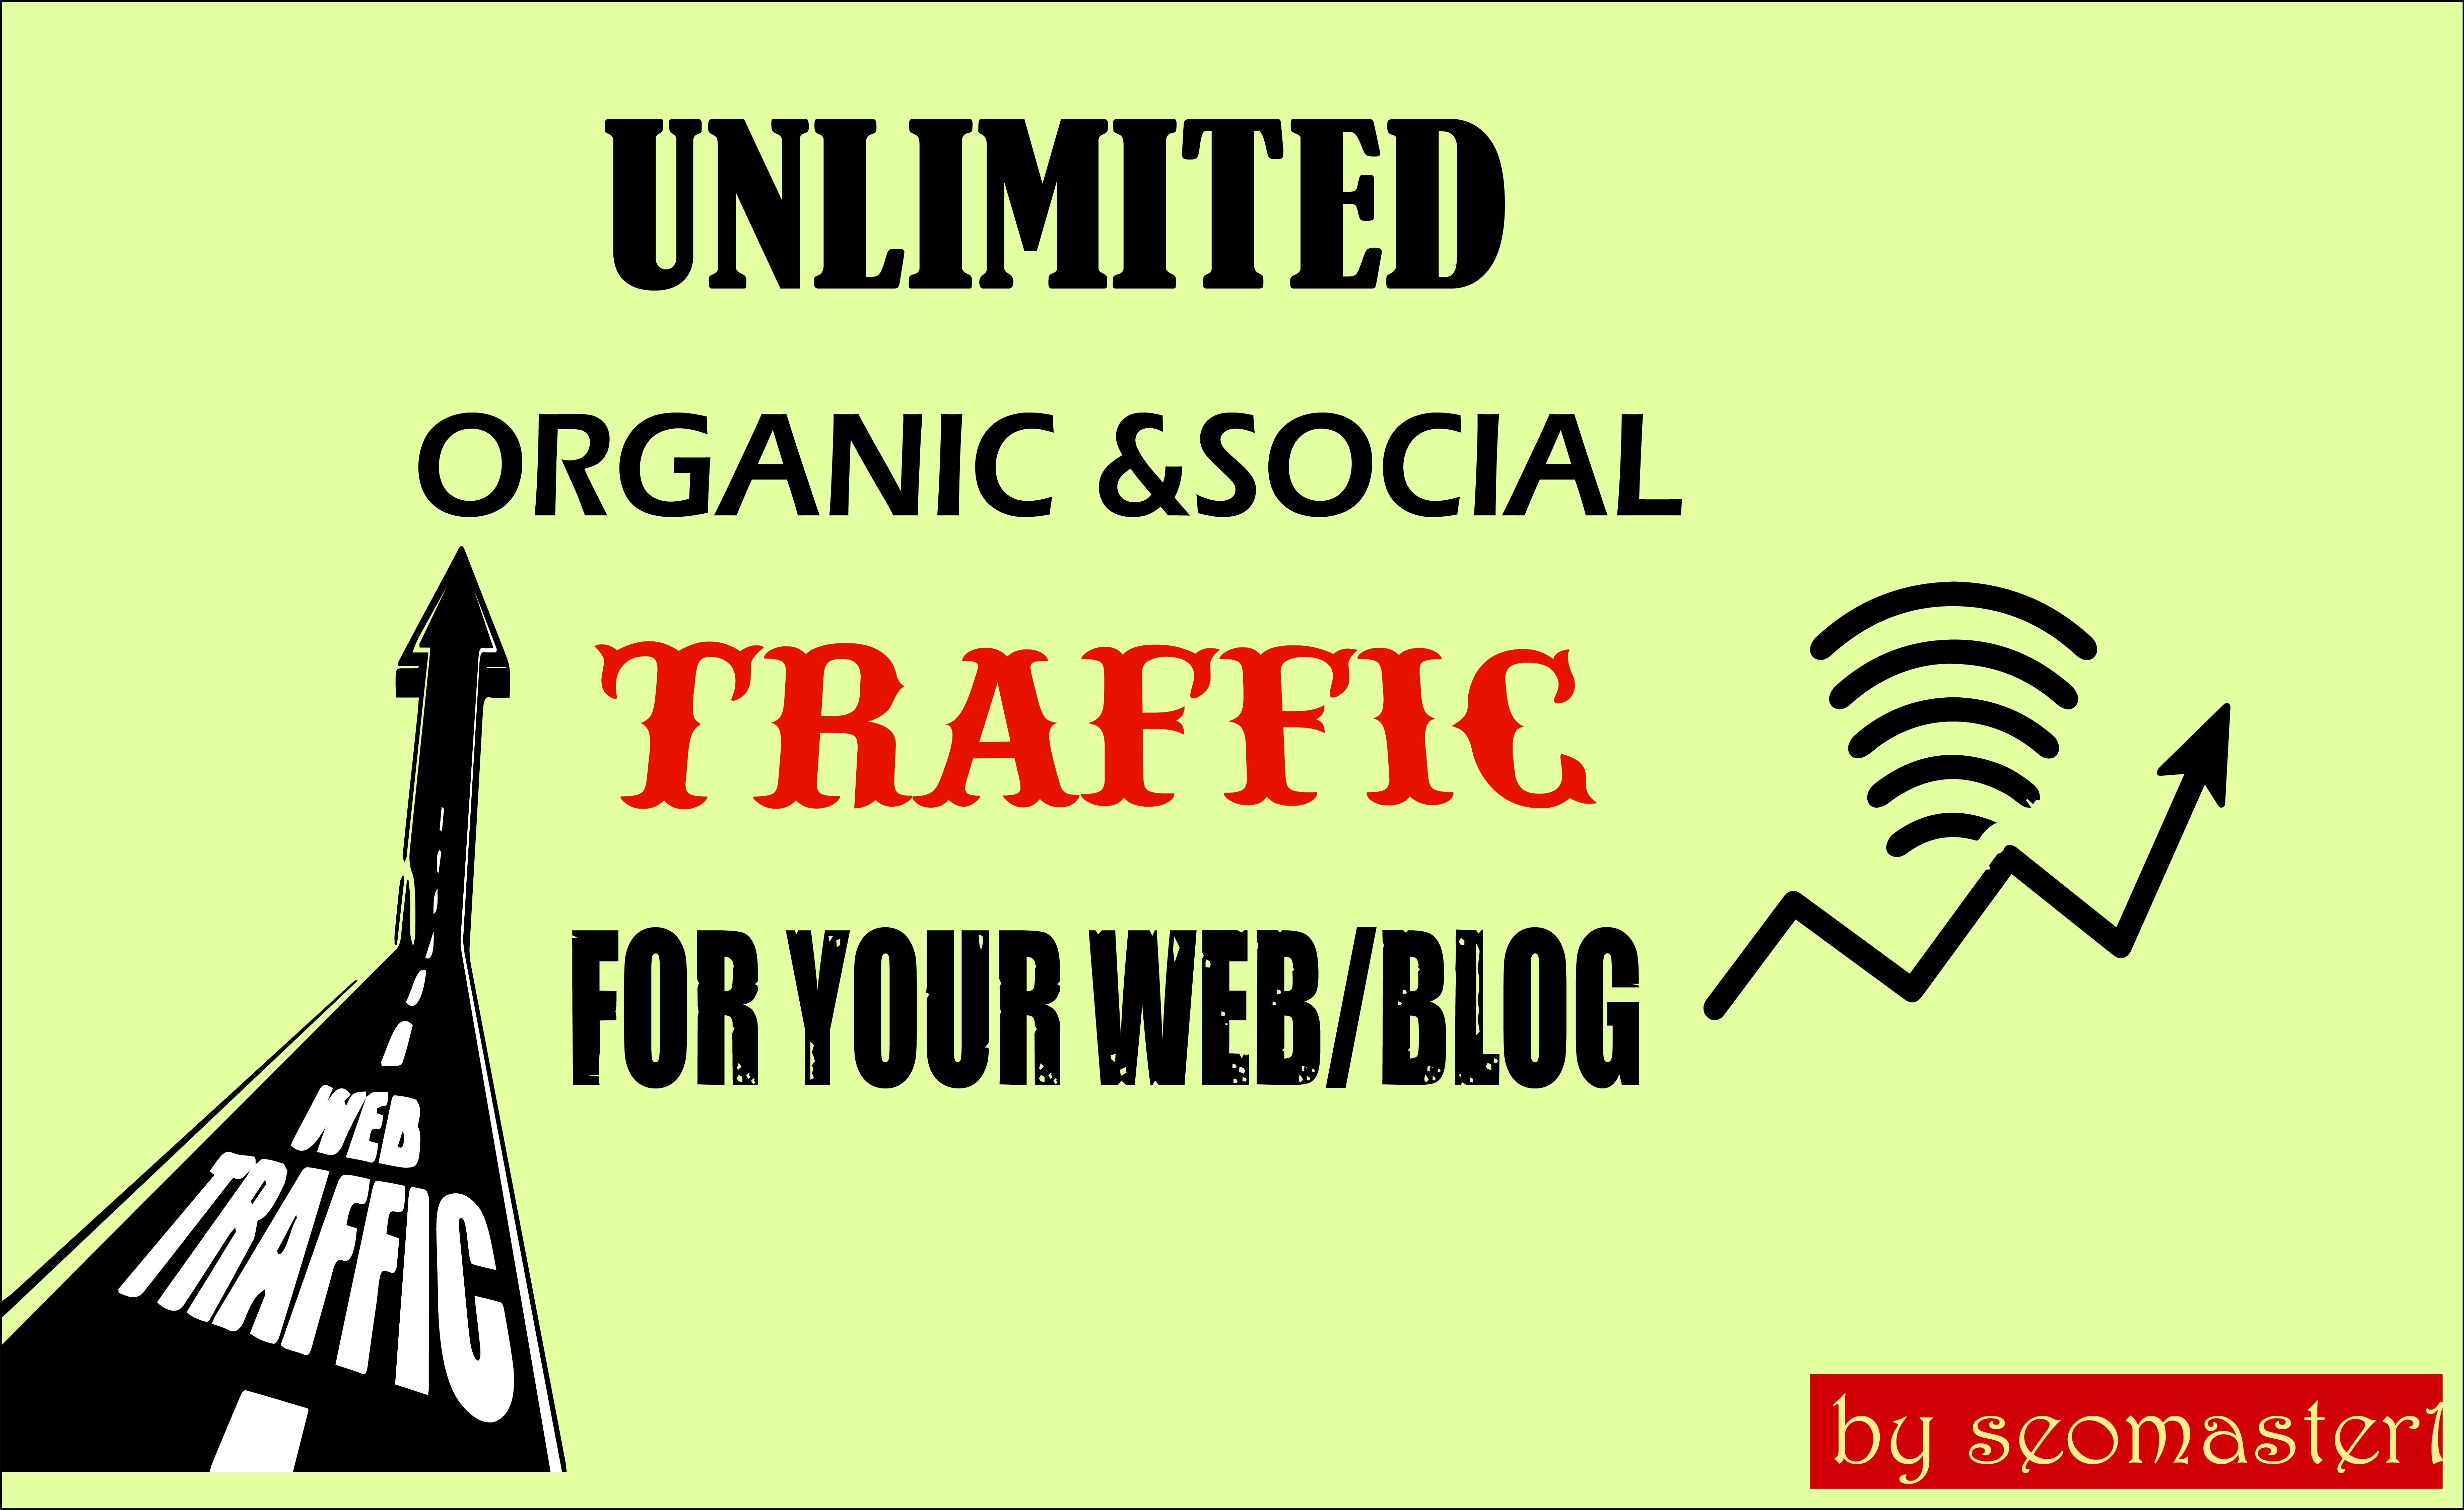 UNLIMITED organic & social Website TRAFFIC for 1 year